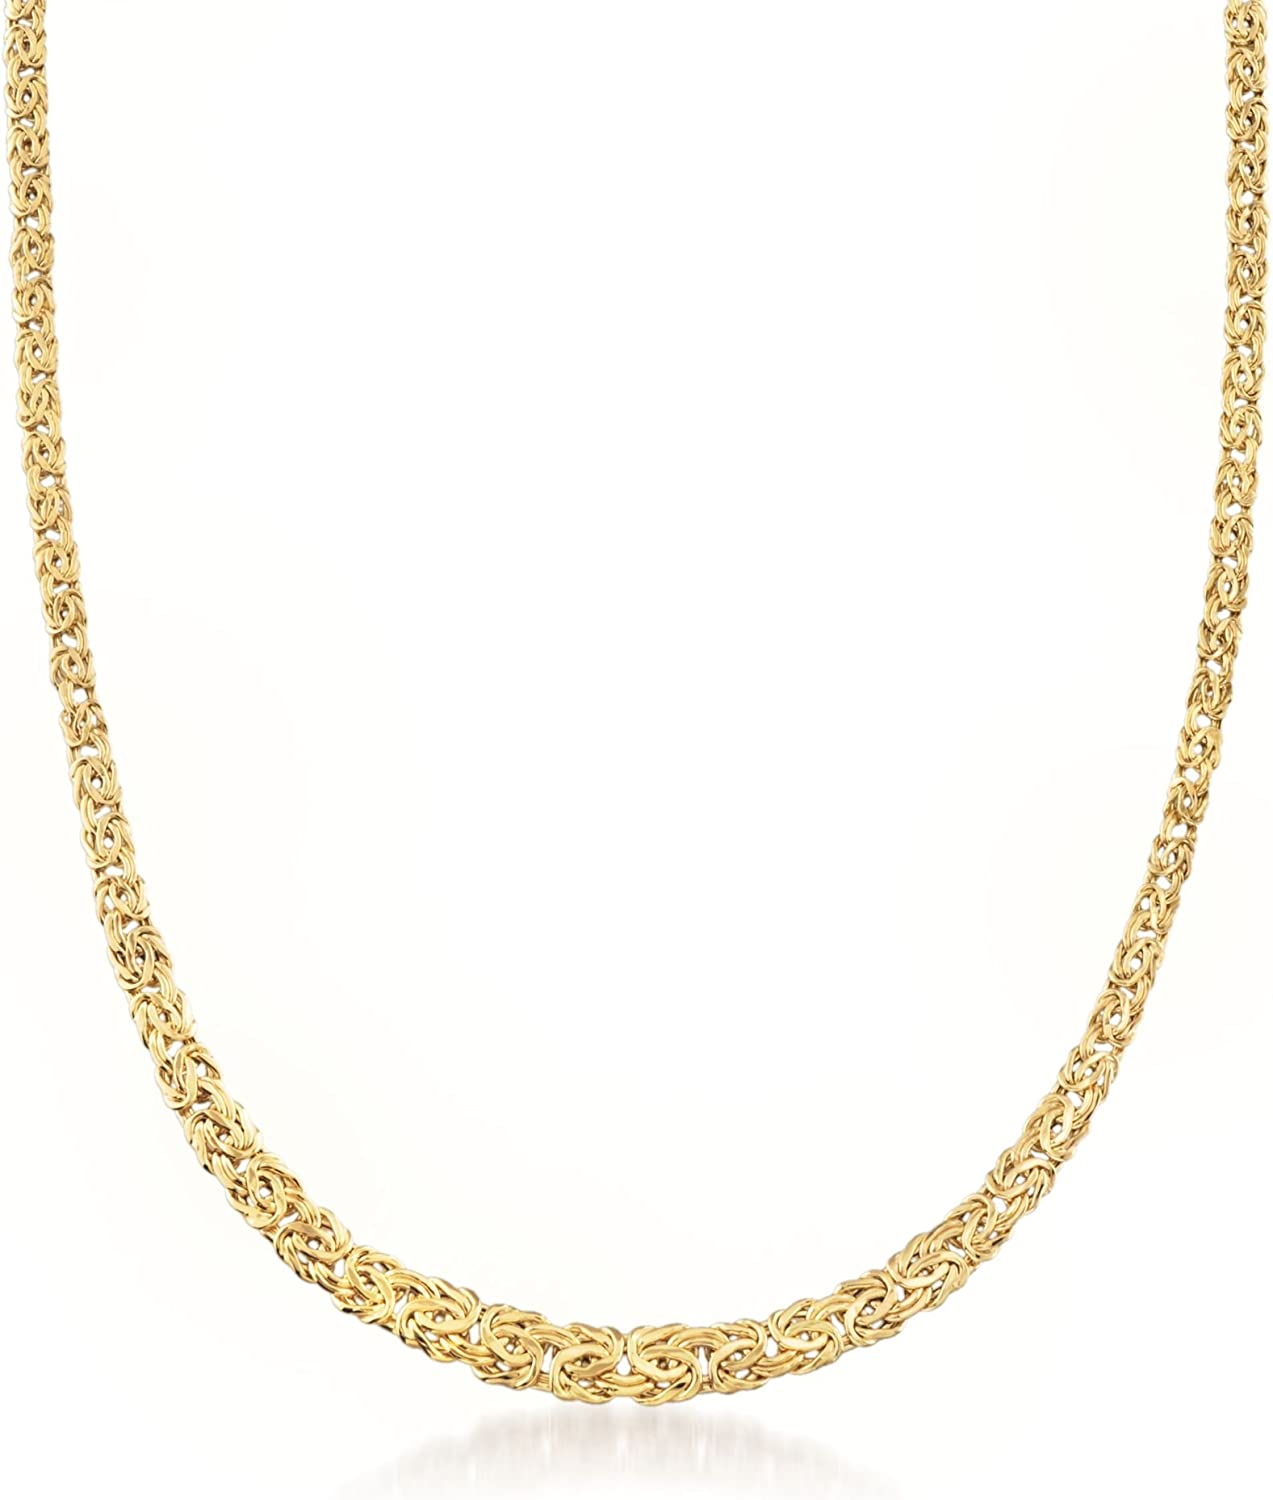 Ross-Simons 14kt Yellow Gold Graduated Byzantine Necklace